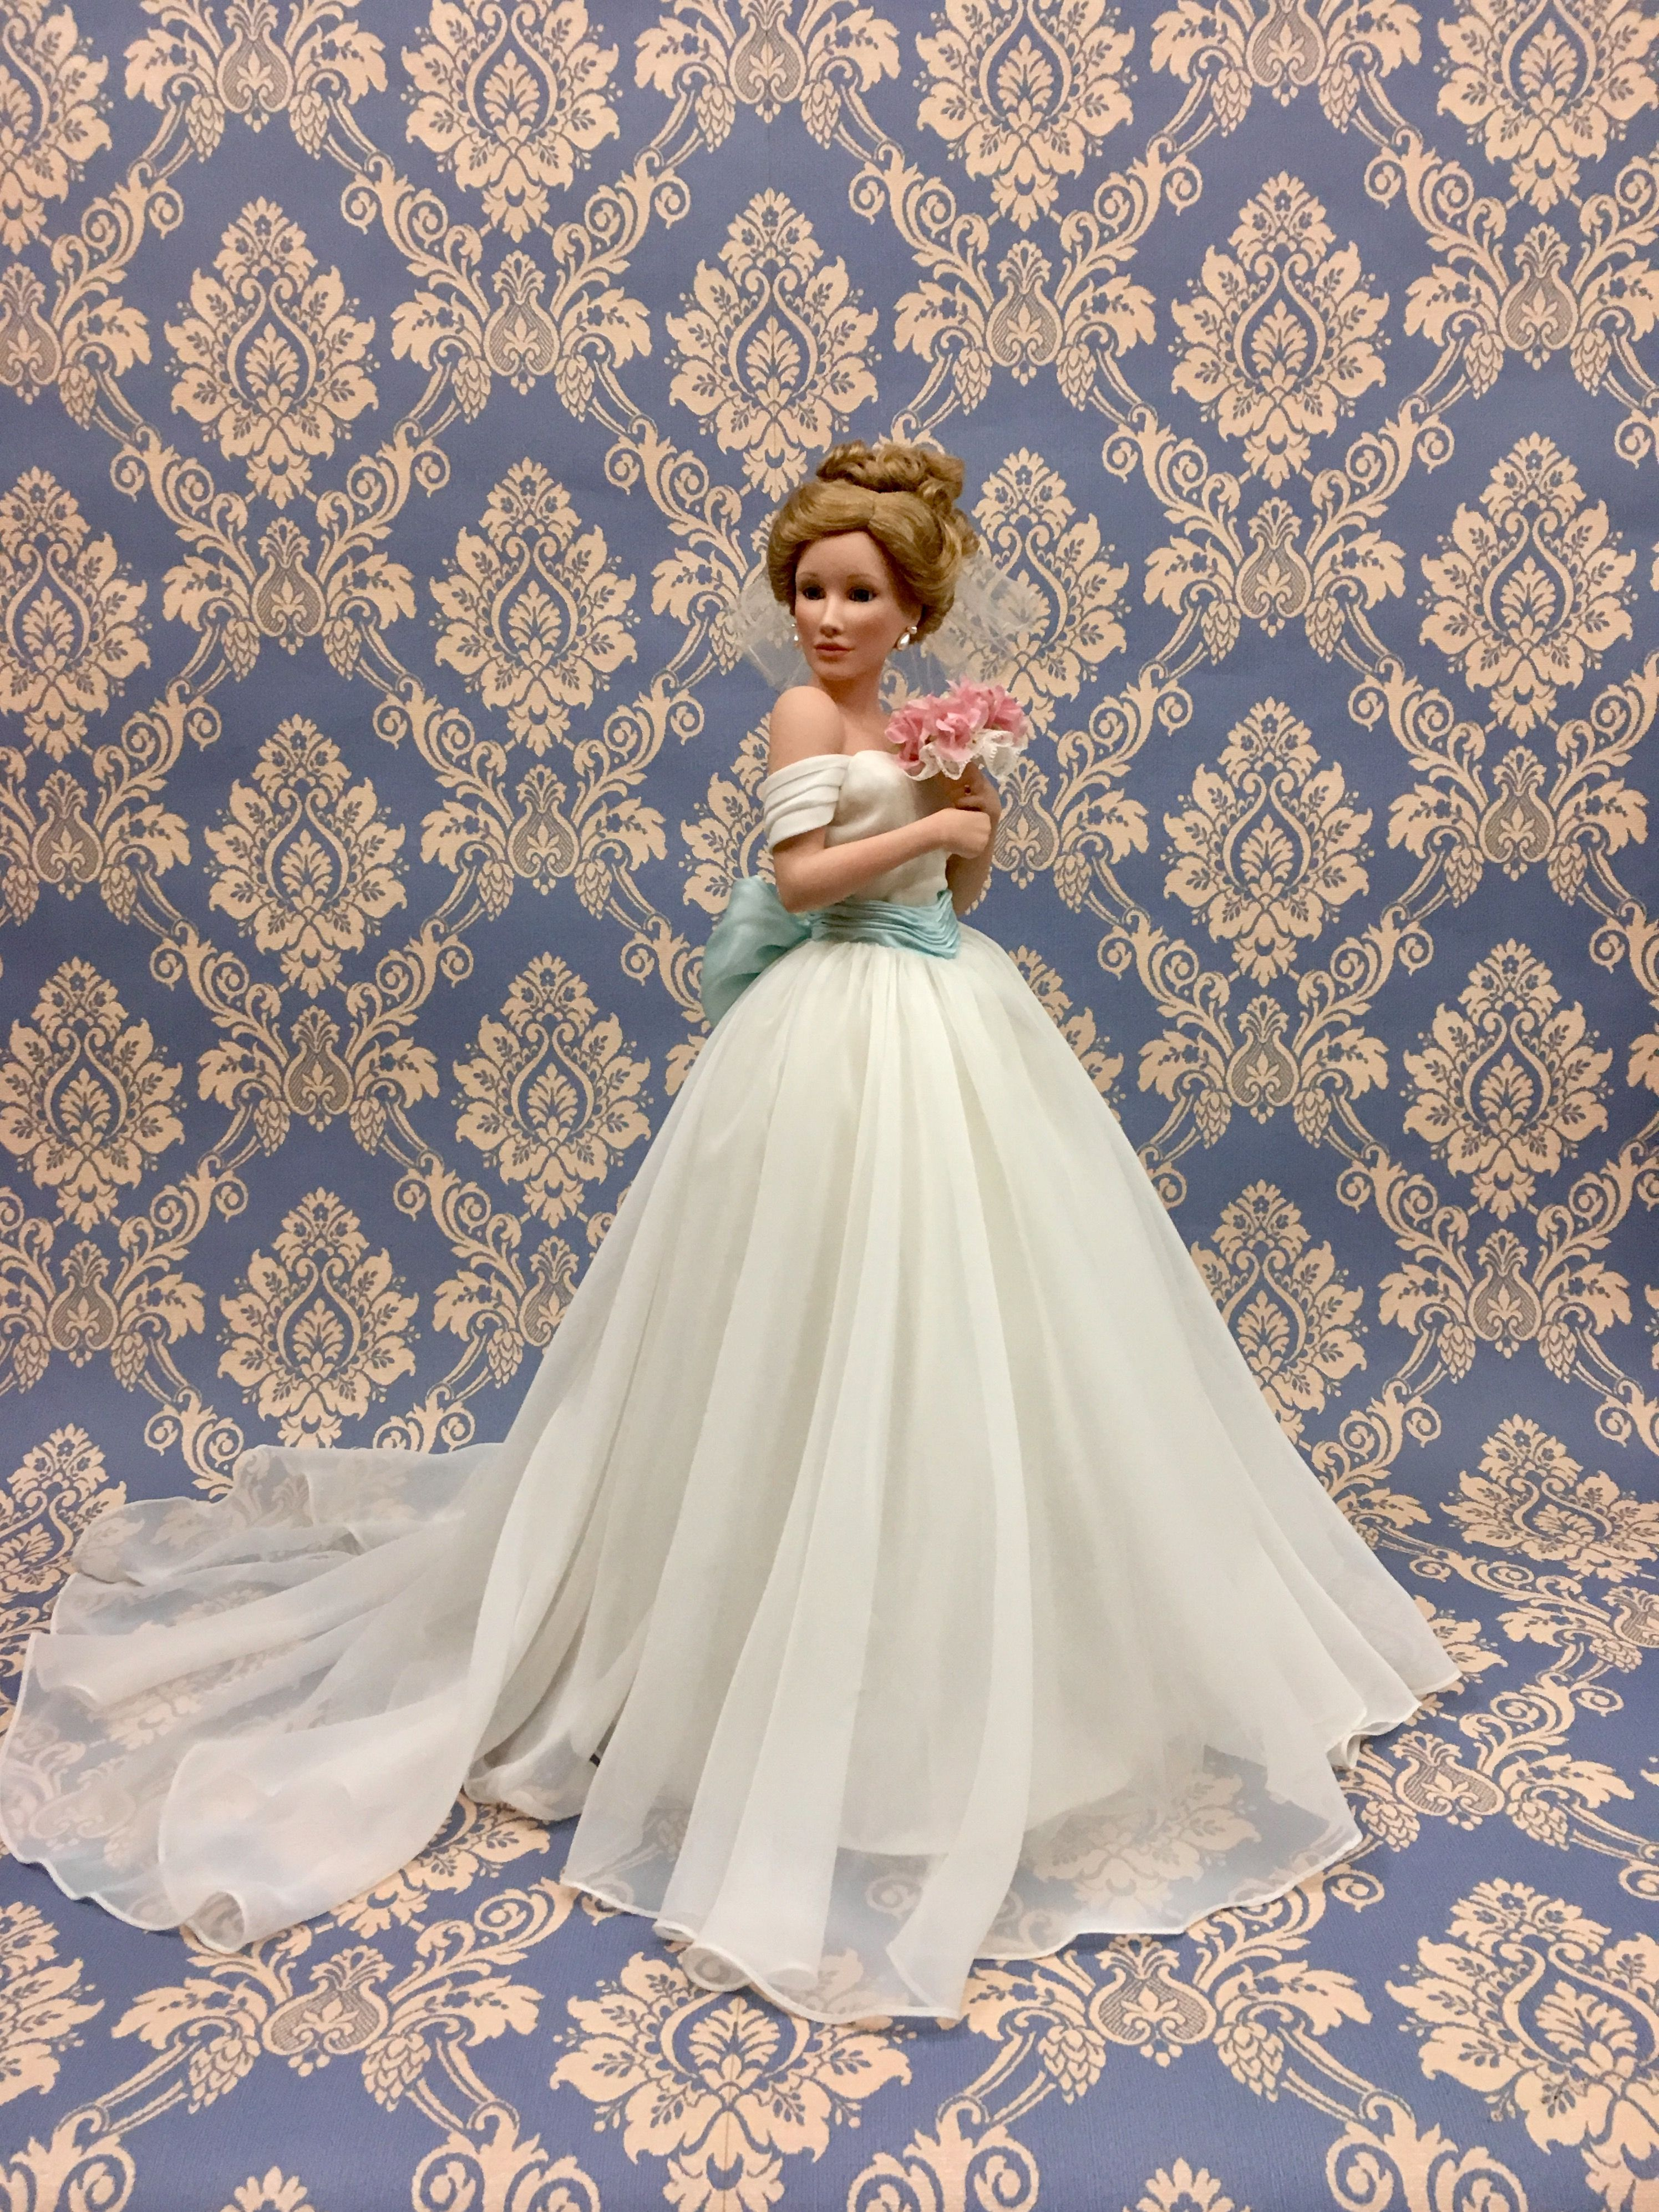 SUMMER DREAM Porcelain bride doll by Sandra Bilotto for The